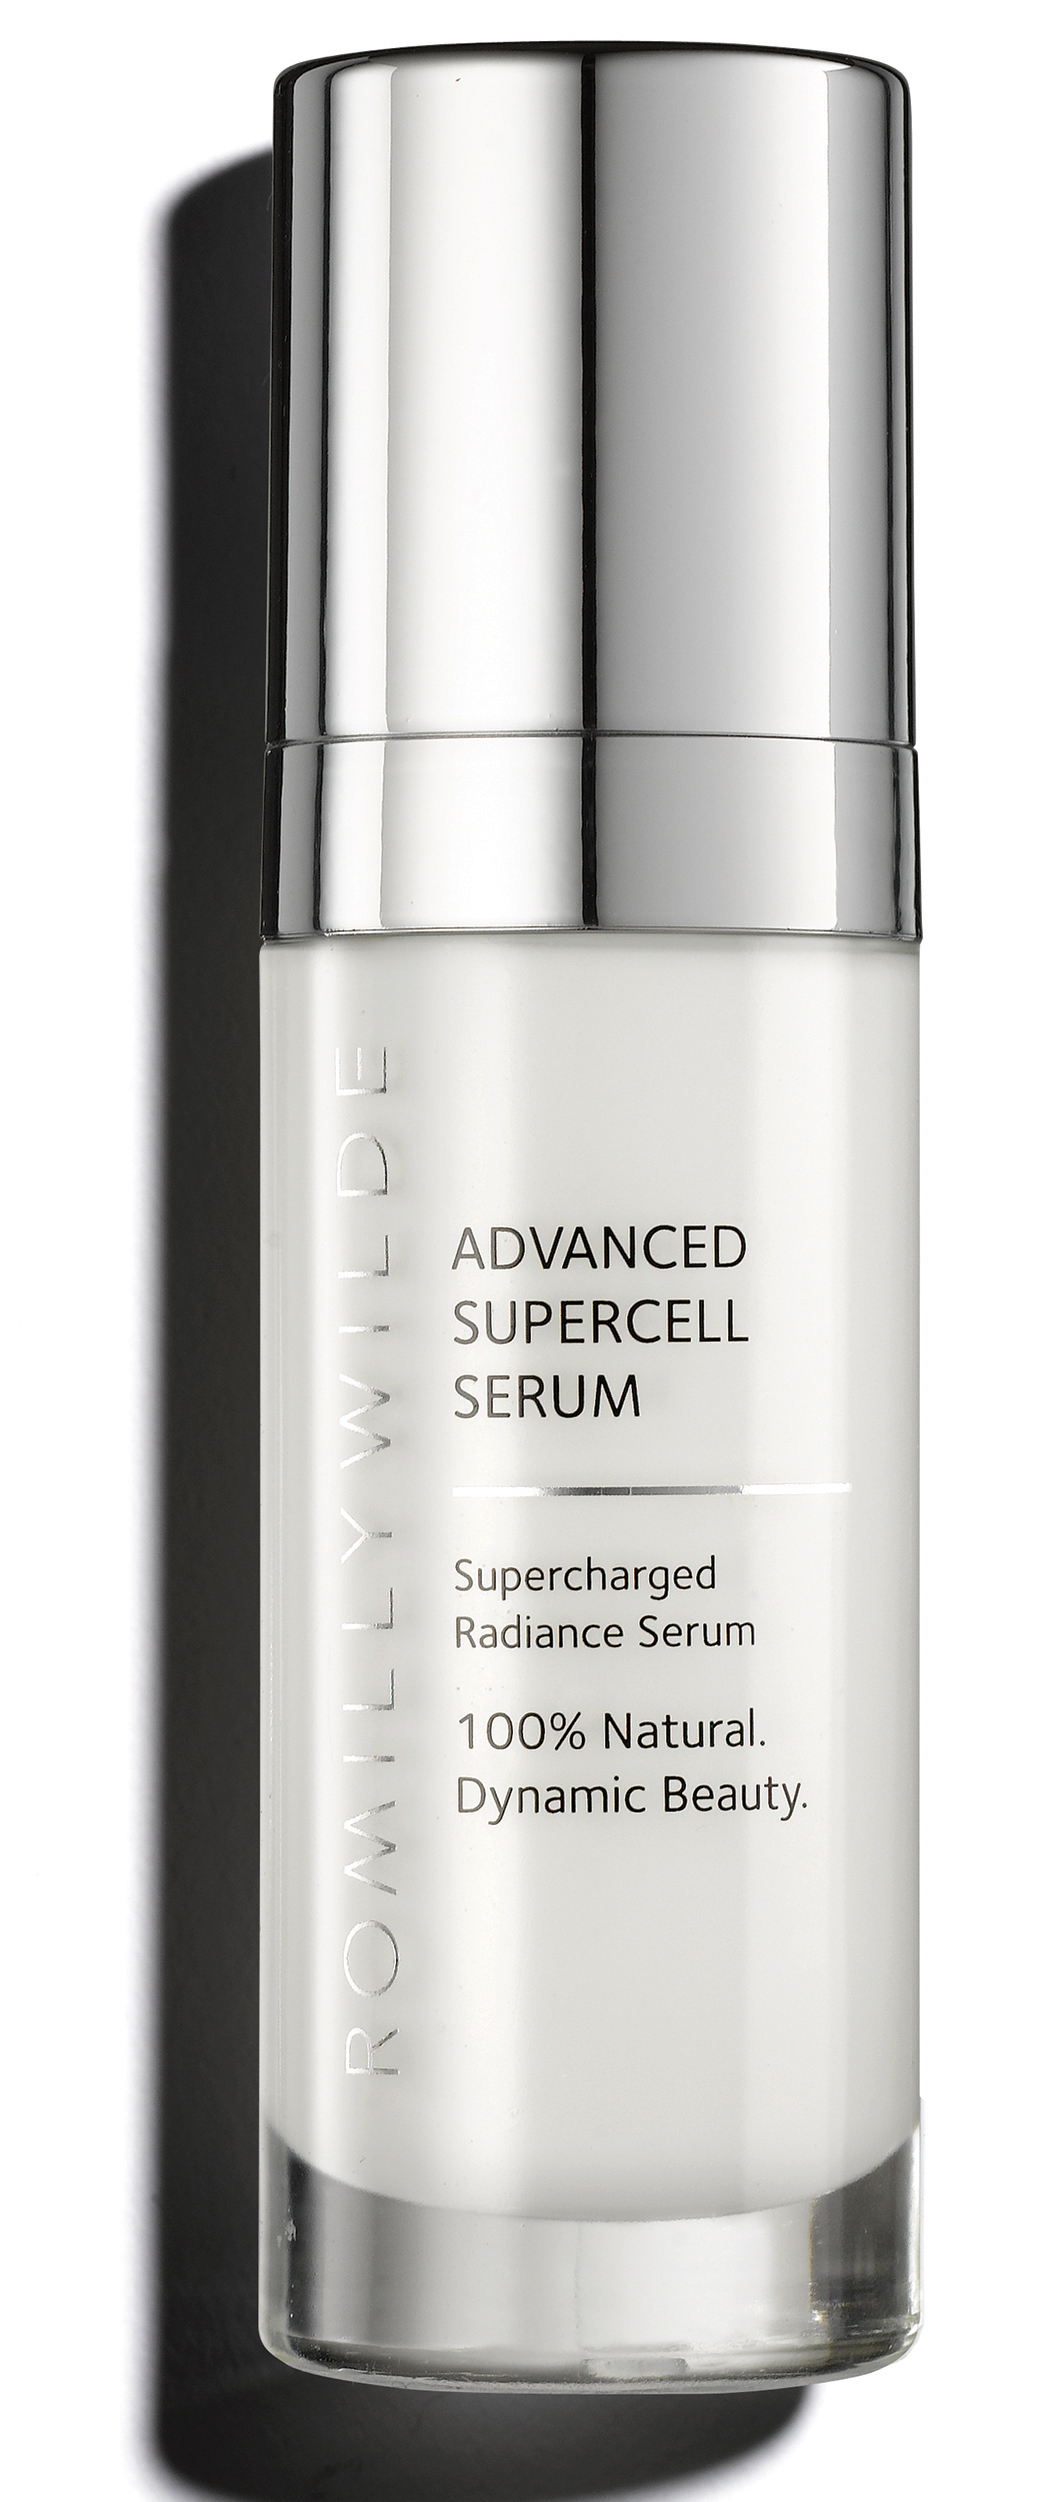 romilly wilde advanced supercell serum review